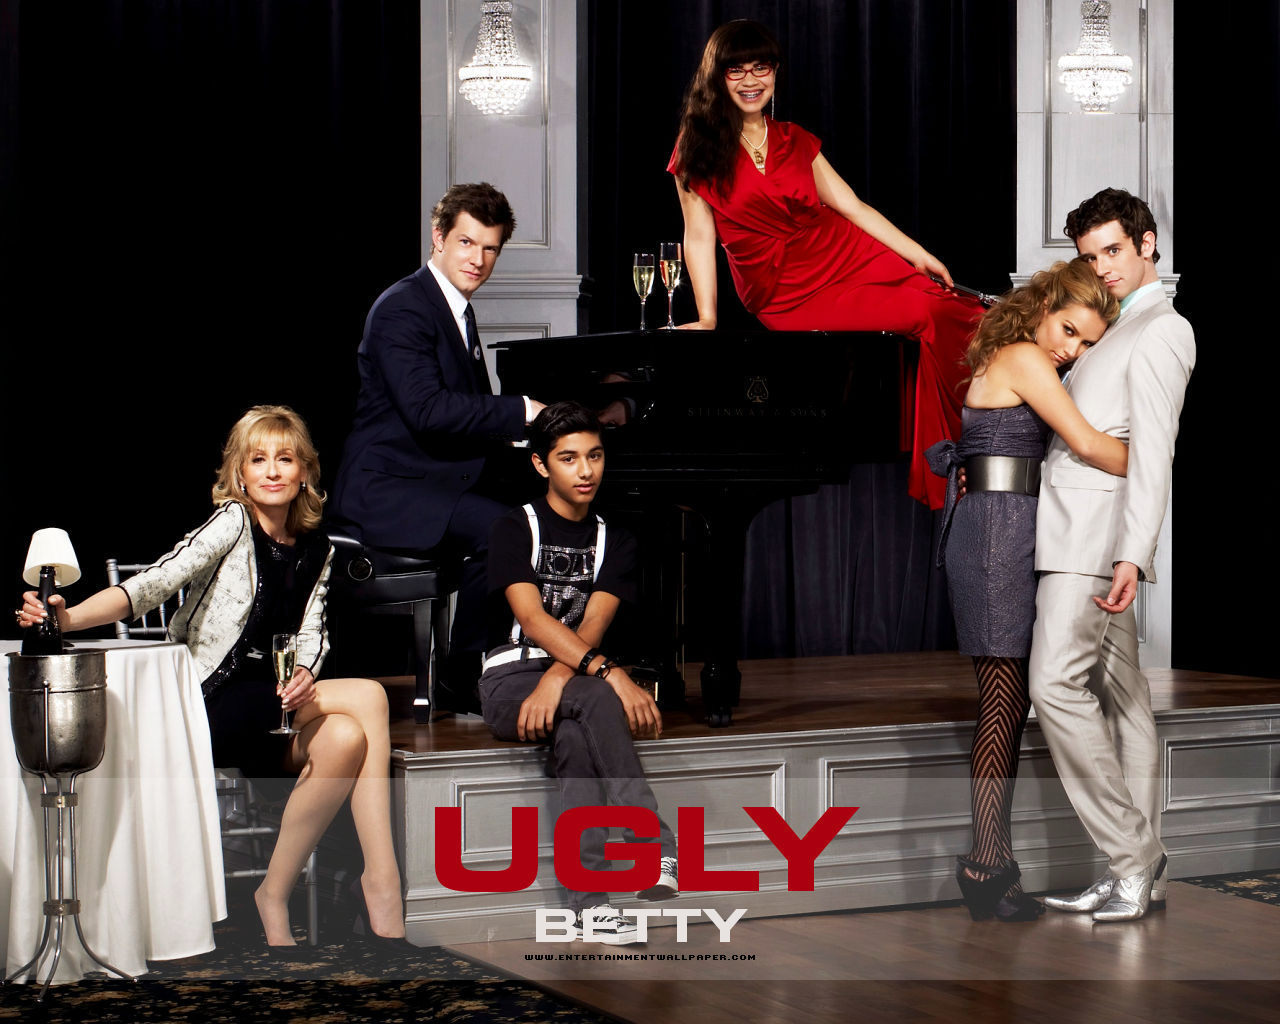 Ugly Betty Ugly-Betty-ugly-betty-2966065-1280-1024